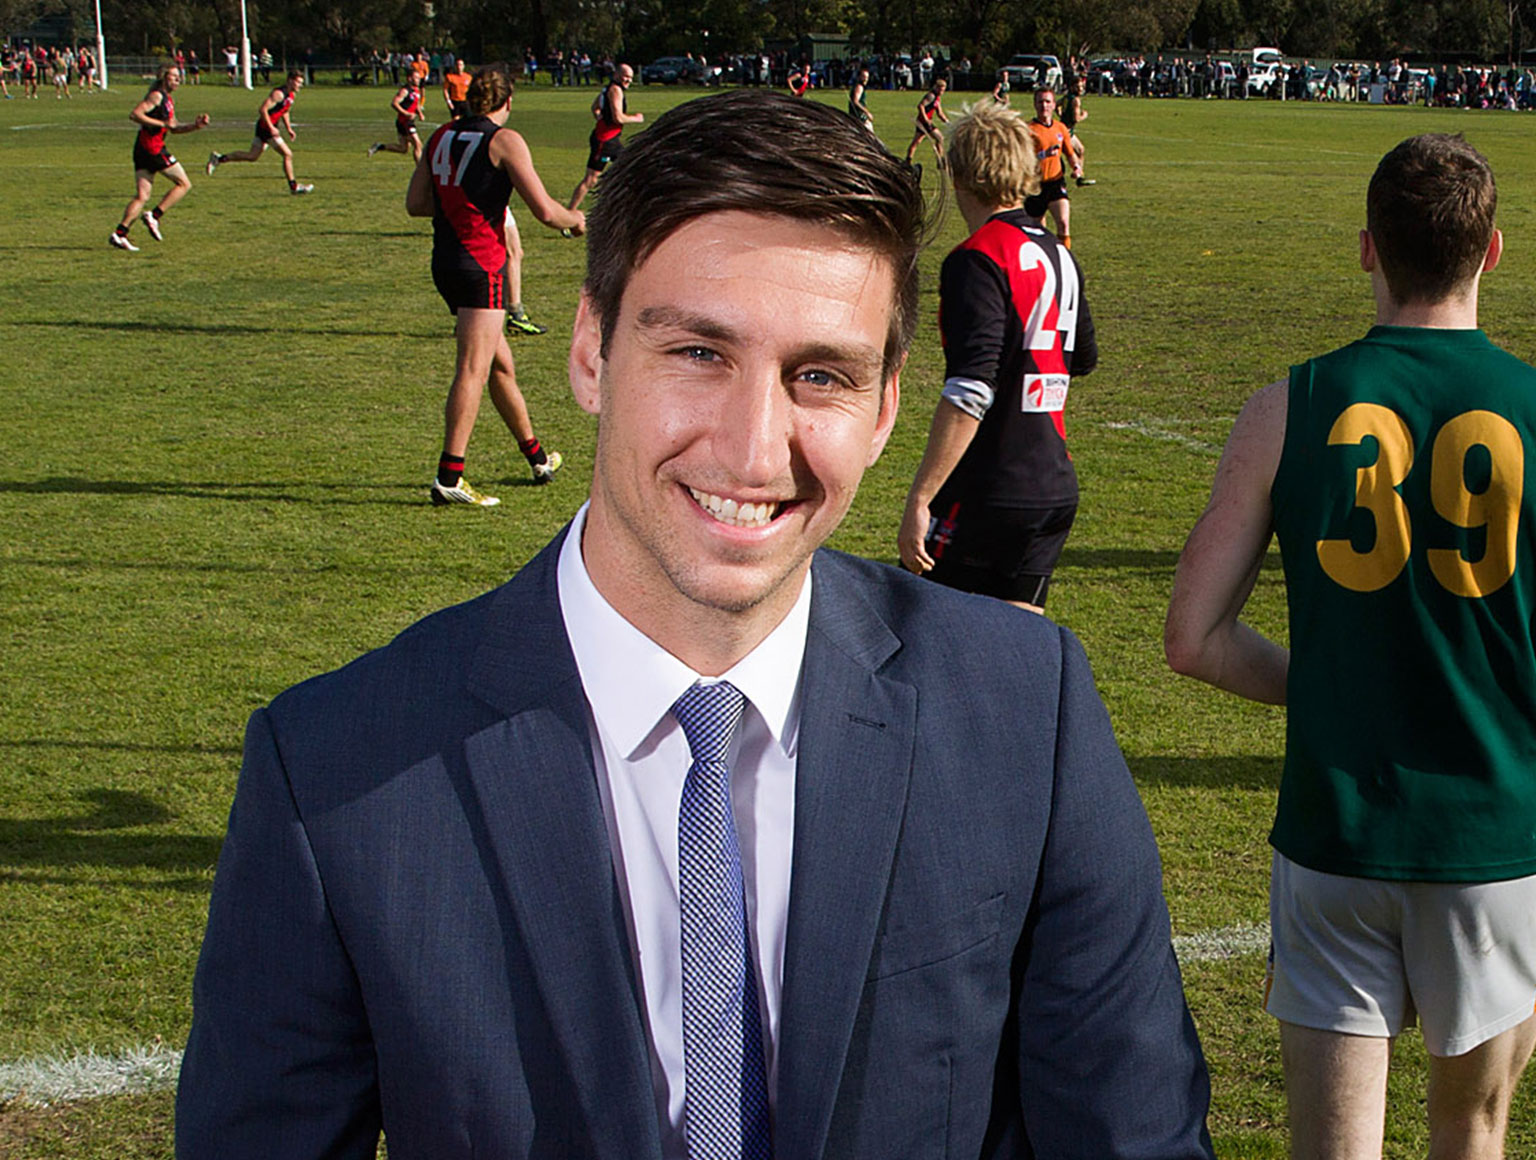 CEO of Southern Football League, David Cannizzo, in the sidelines of a local football game